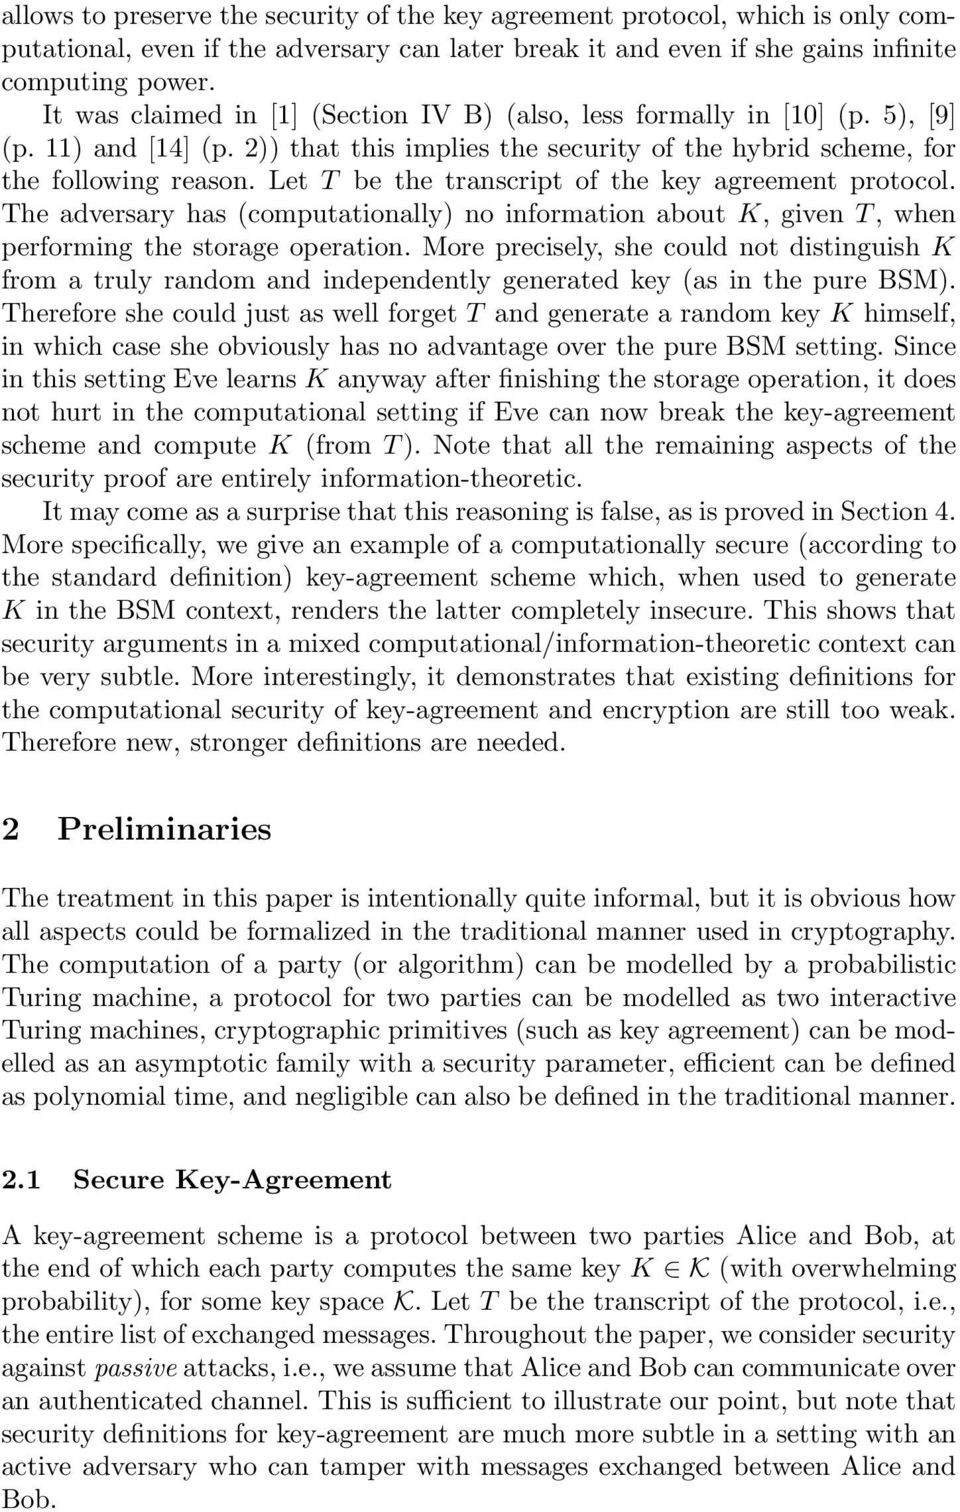 Let T be the transcript of the key agreement protocol. The adversary has (computationally) no information about K, given T, when performing the storage operation.